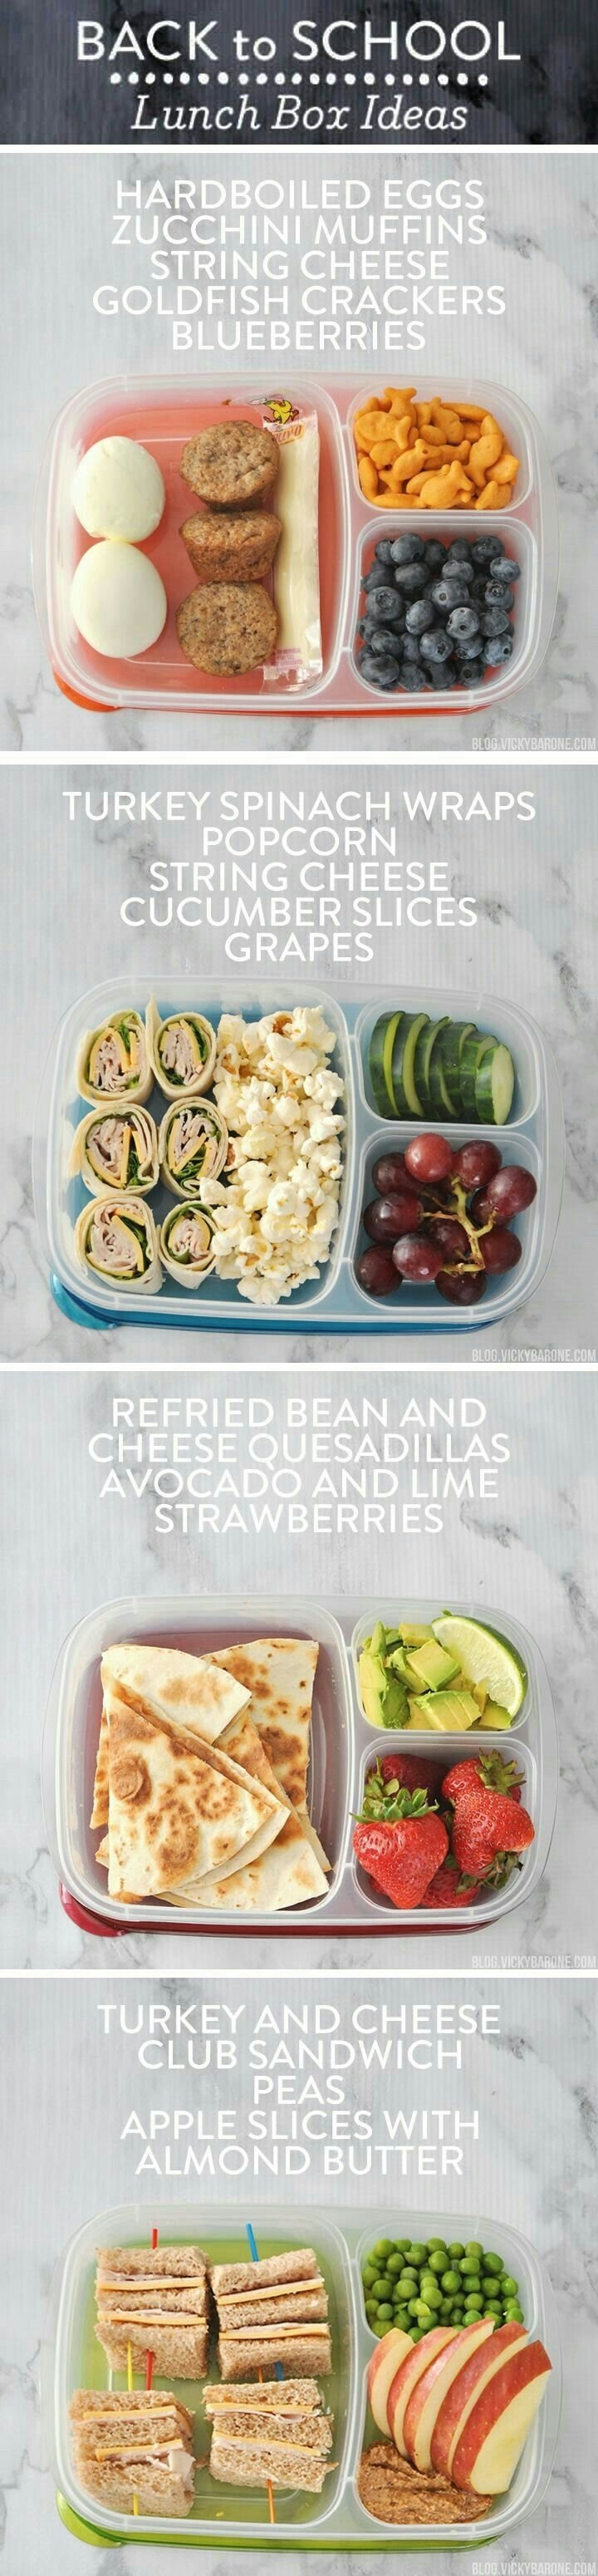 10 Unique High Protein Lunch Ideas For Work 250 best lunchbox ideas images on pinterest toddler food kid 1